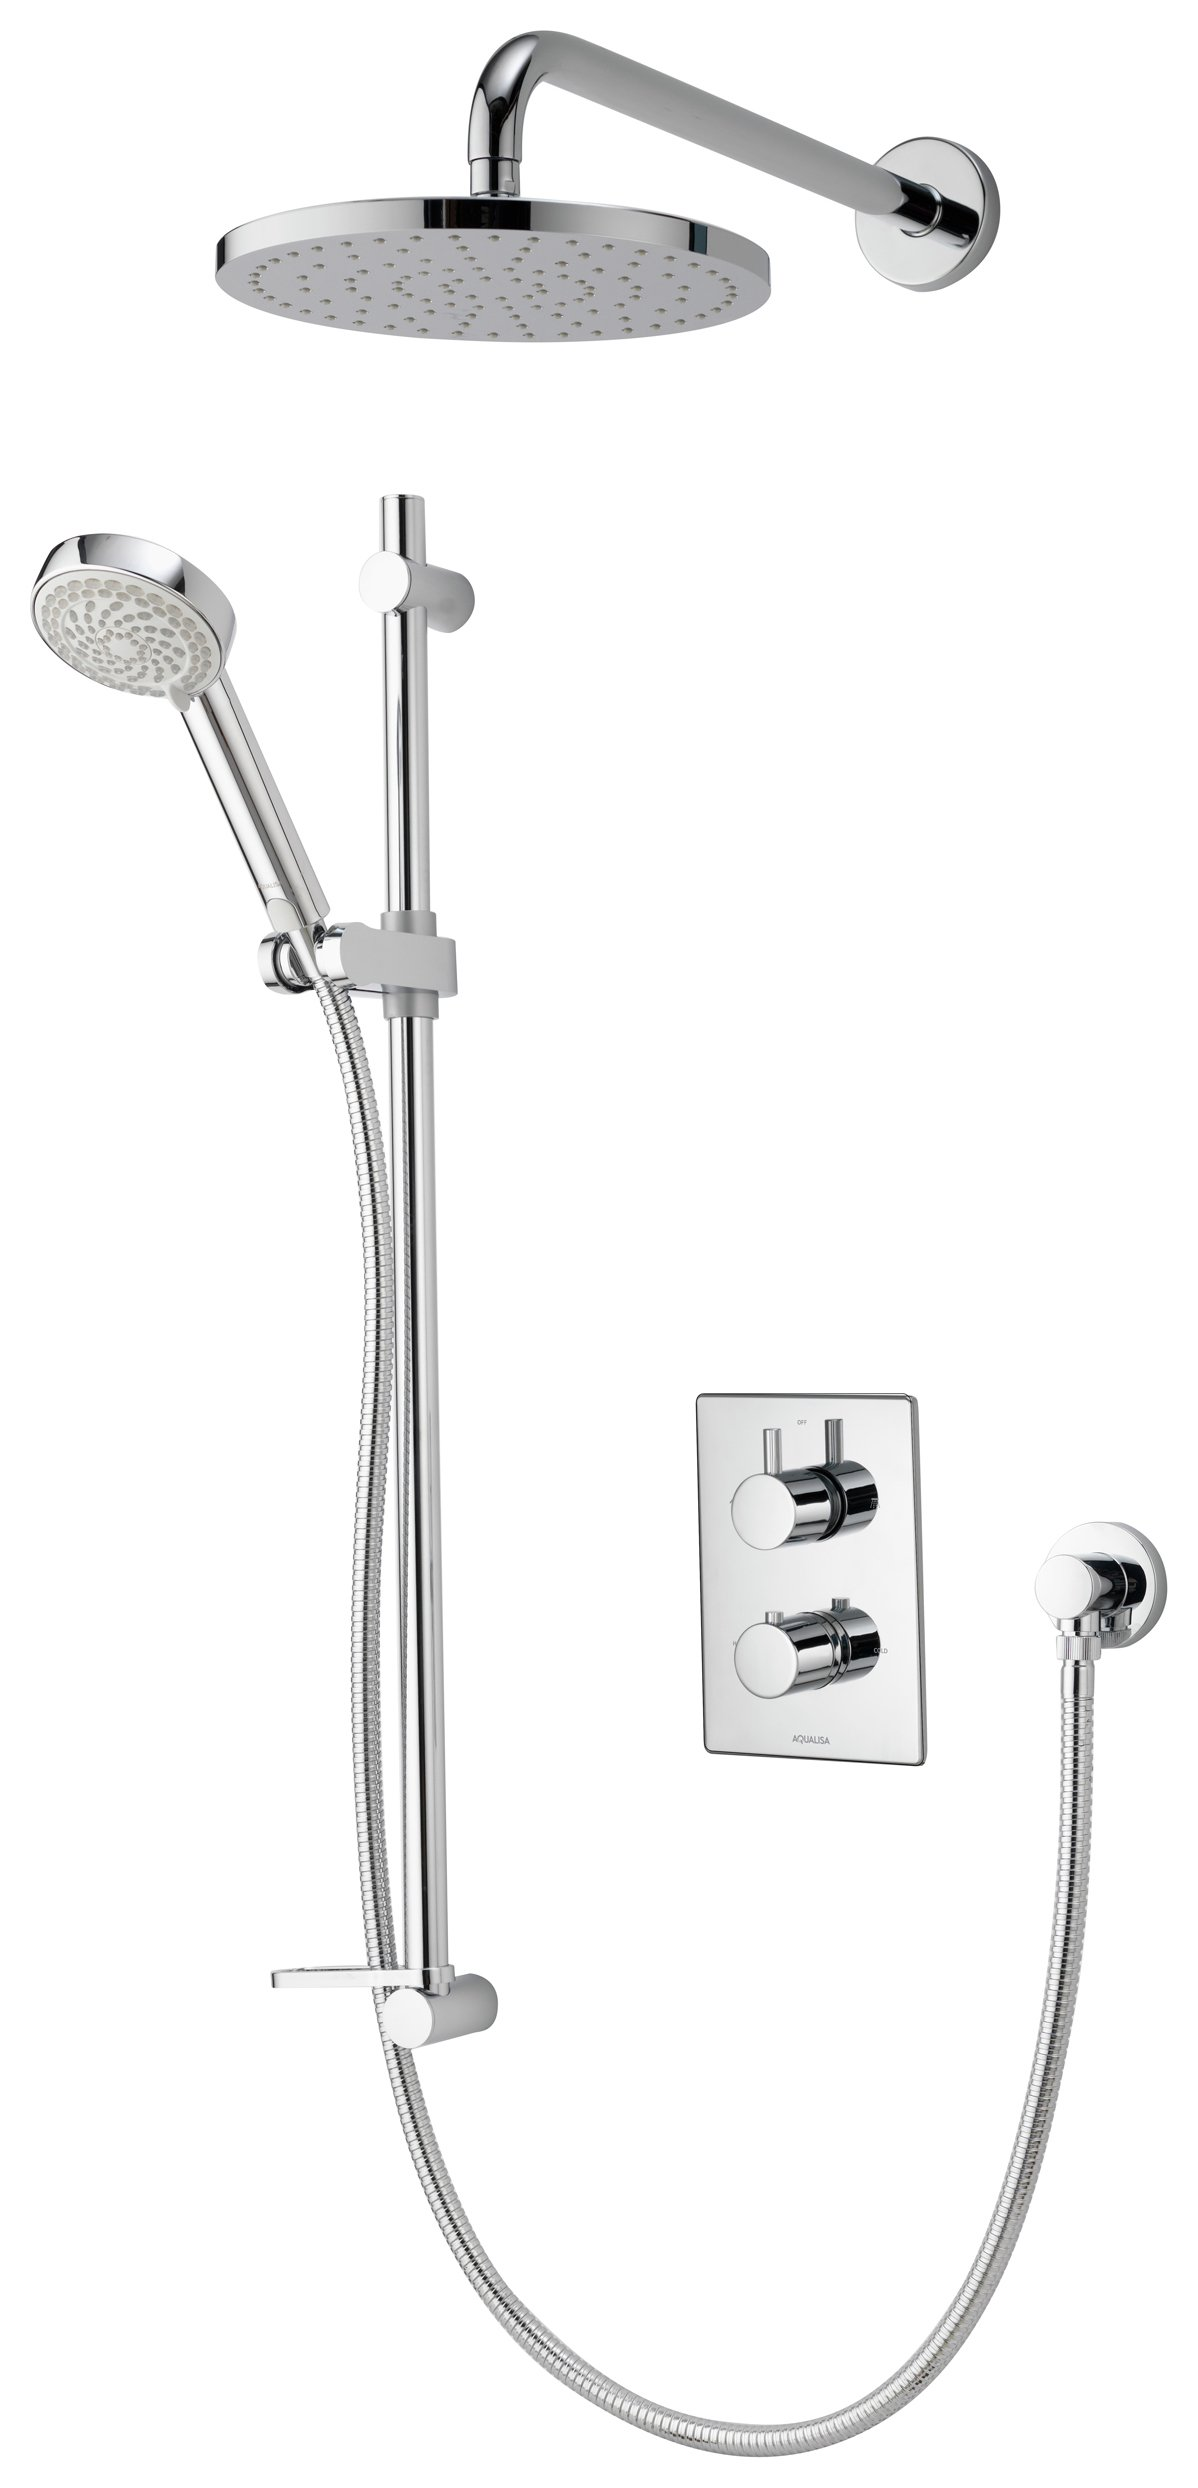 Aqualisa AQ 550 Mixer Shower.